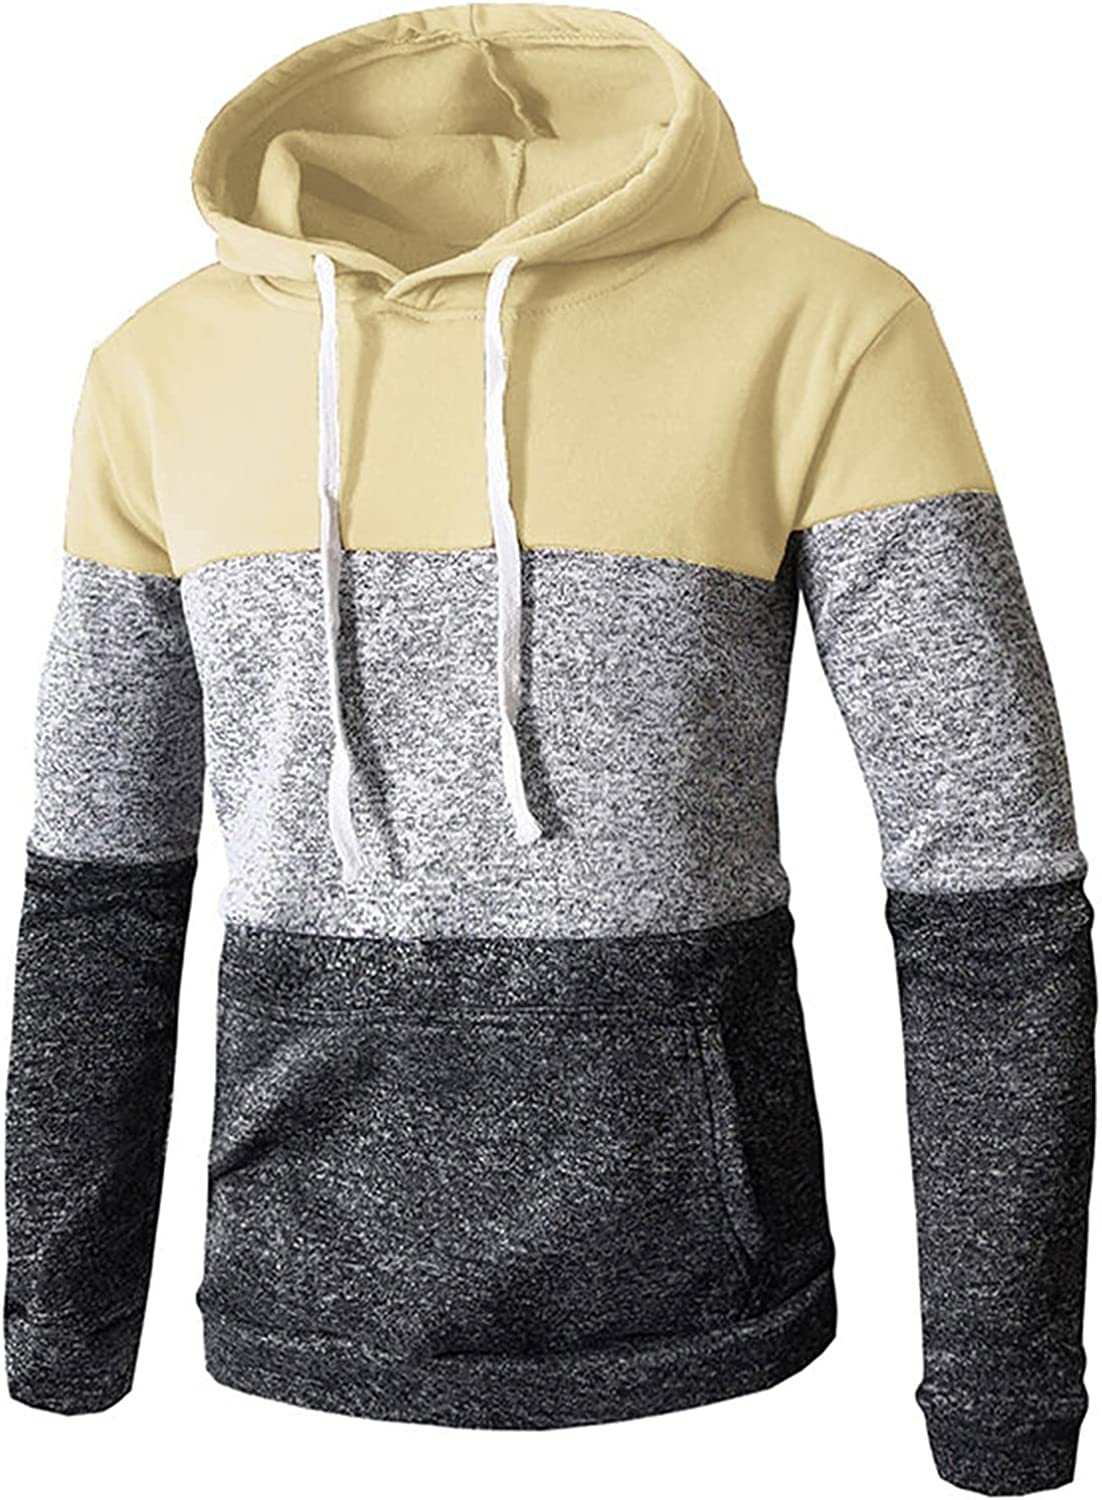 HONGJ Stitching Hoodies for Mens, Fall Color Block Patchwork Drawstring Hooded Sweatshirts Casual Pullover with Pocket